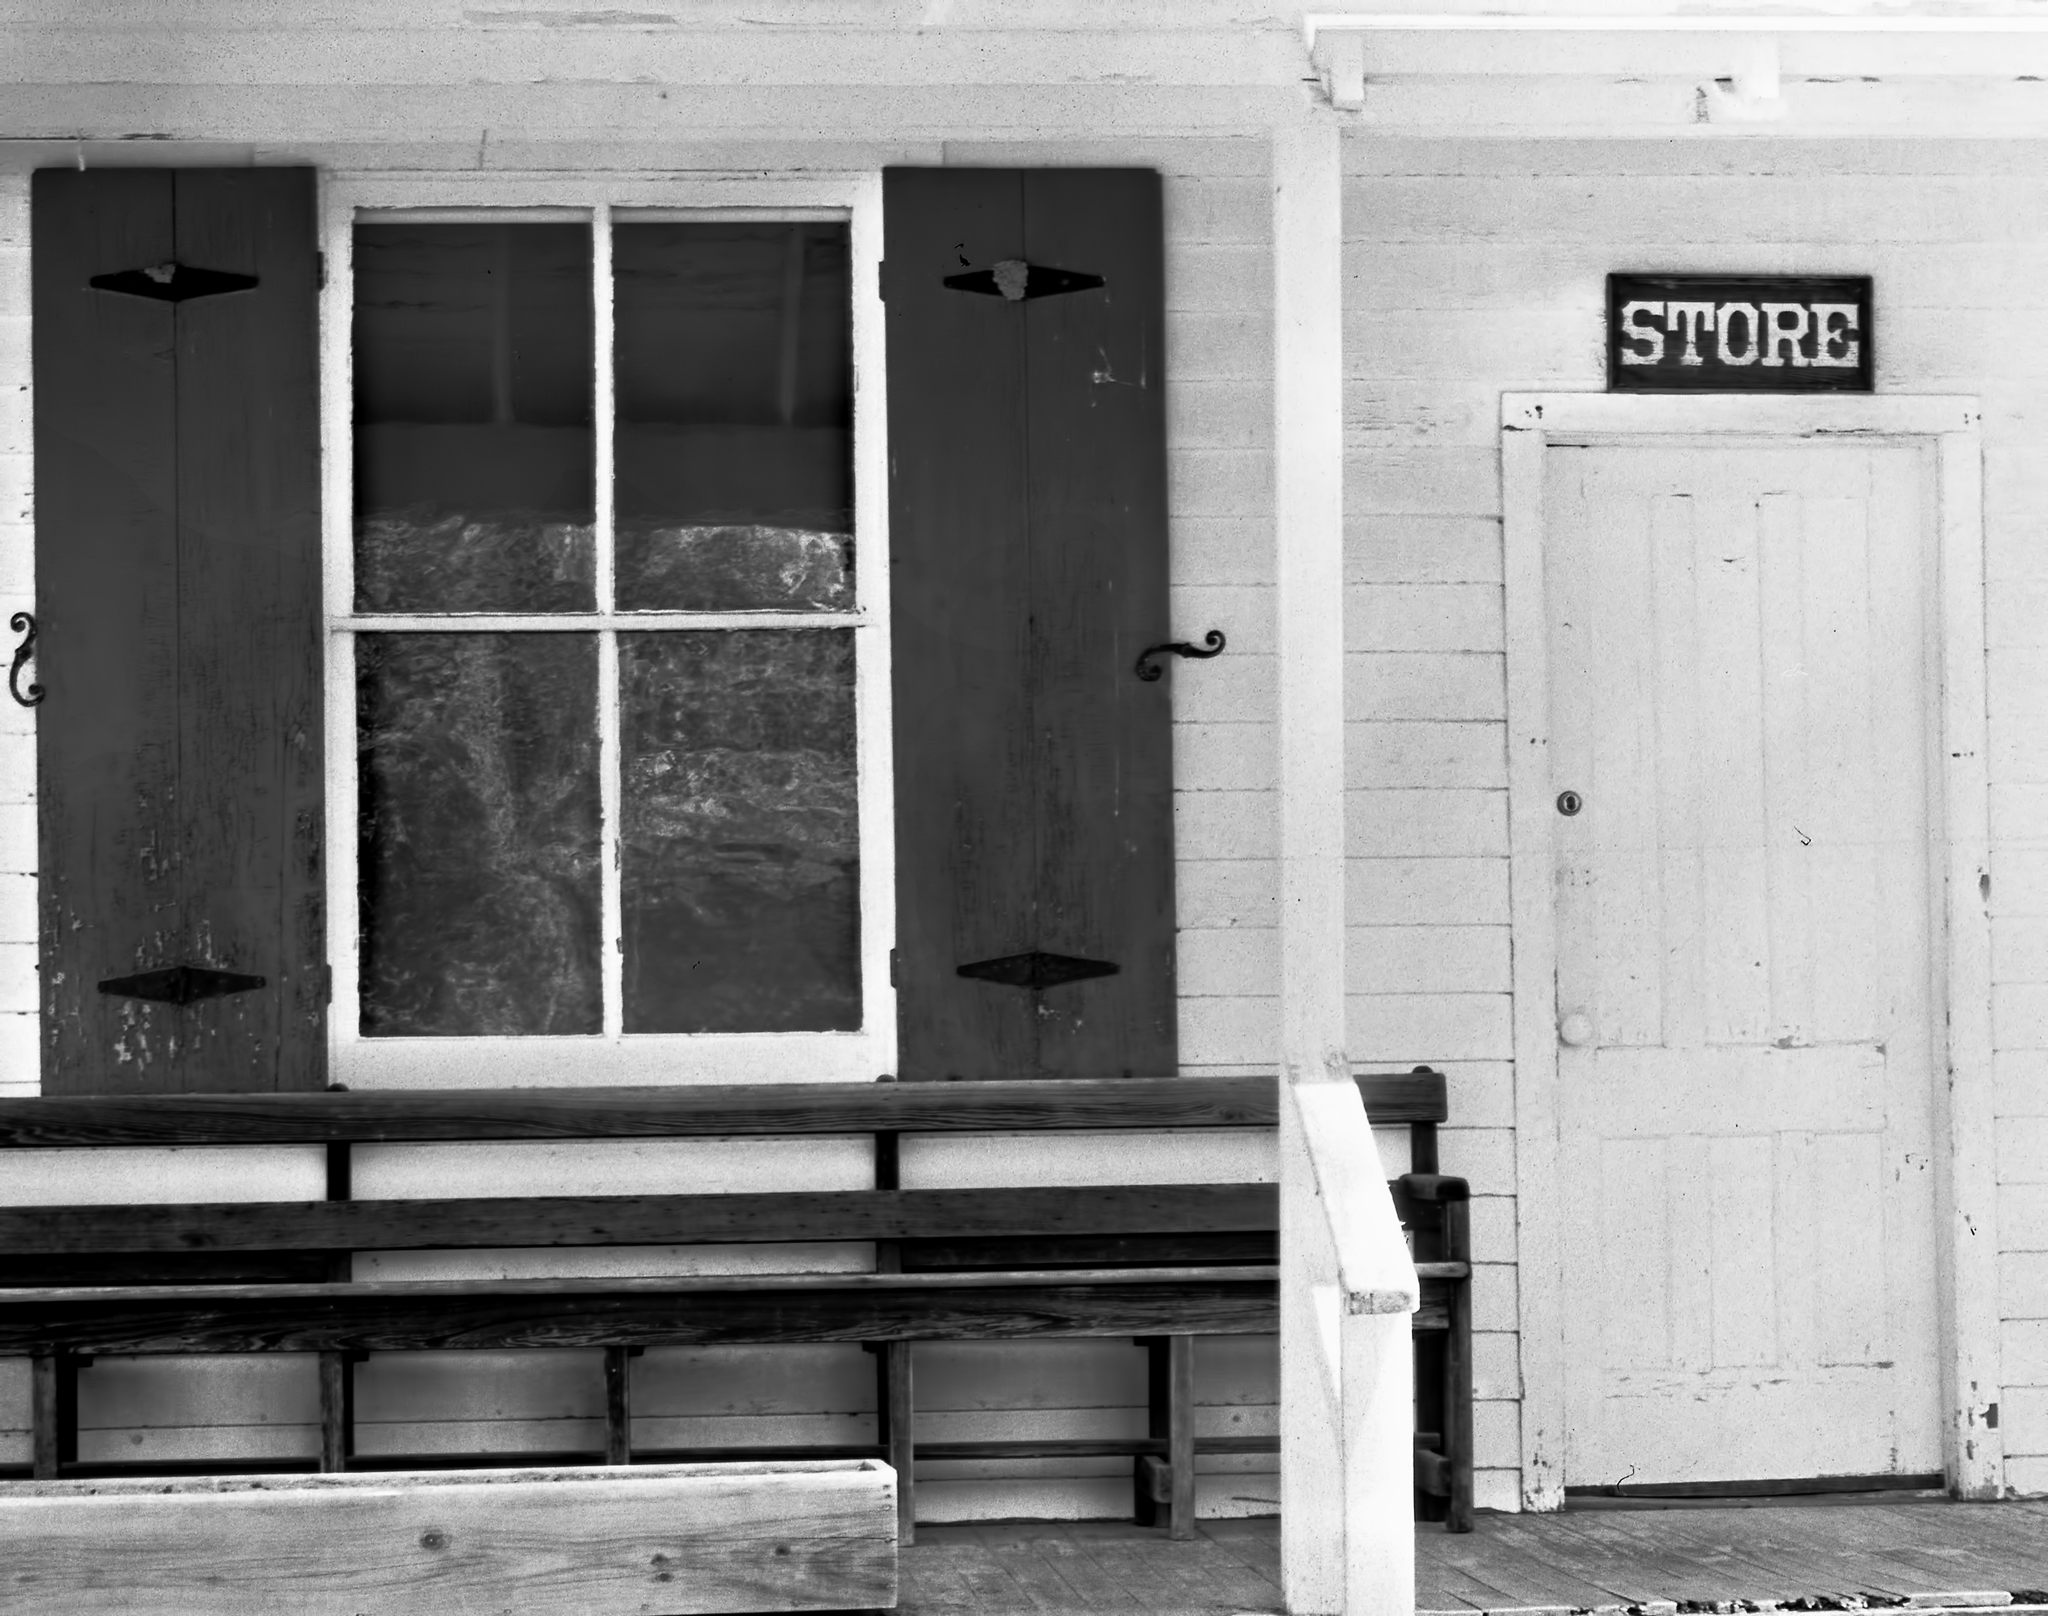 4x5_for_365_project_0132_Millbrook_Store.png